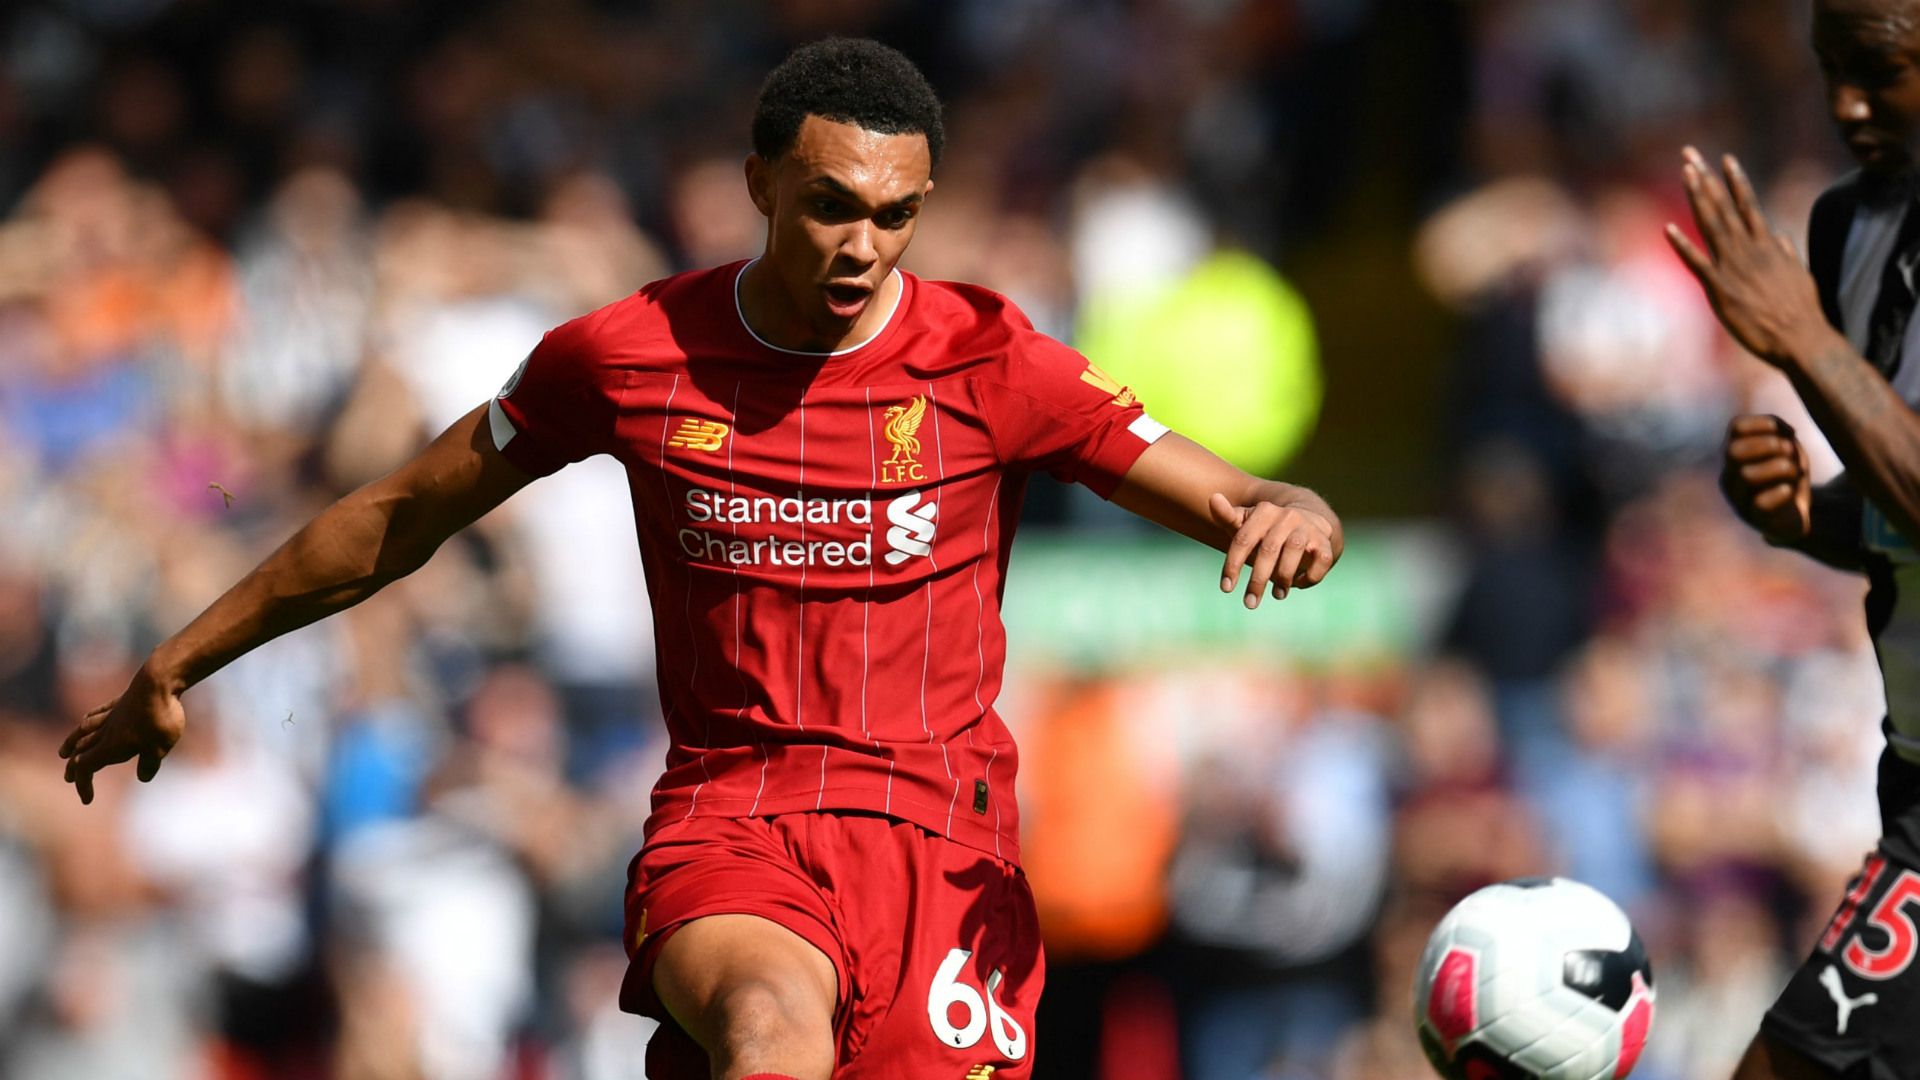 'Alexander-Arnold can take Winks' place for England' – Former Three Lions star wants role change for Liverpool right-back